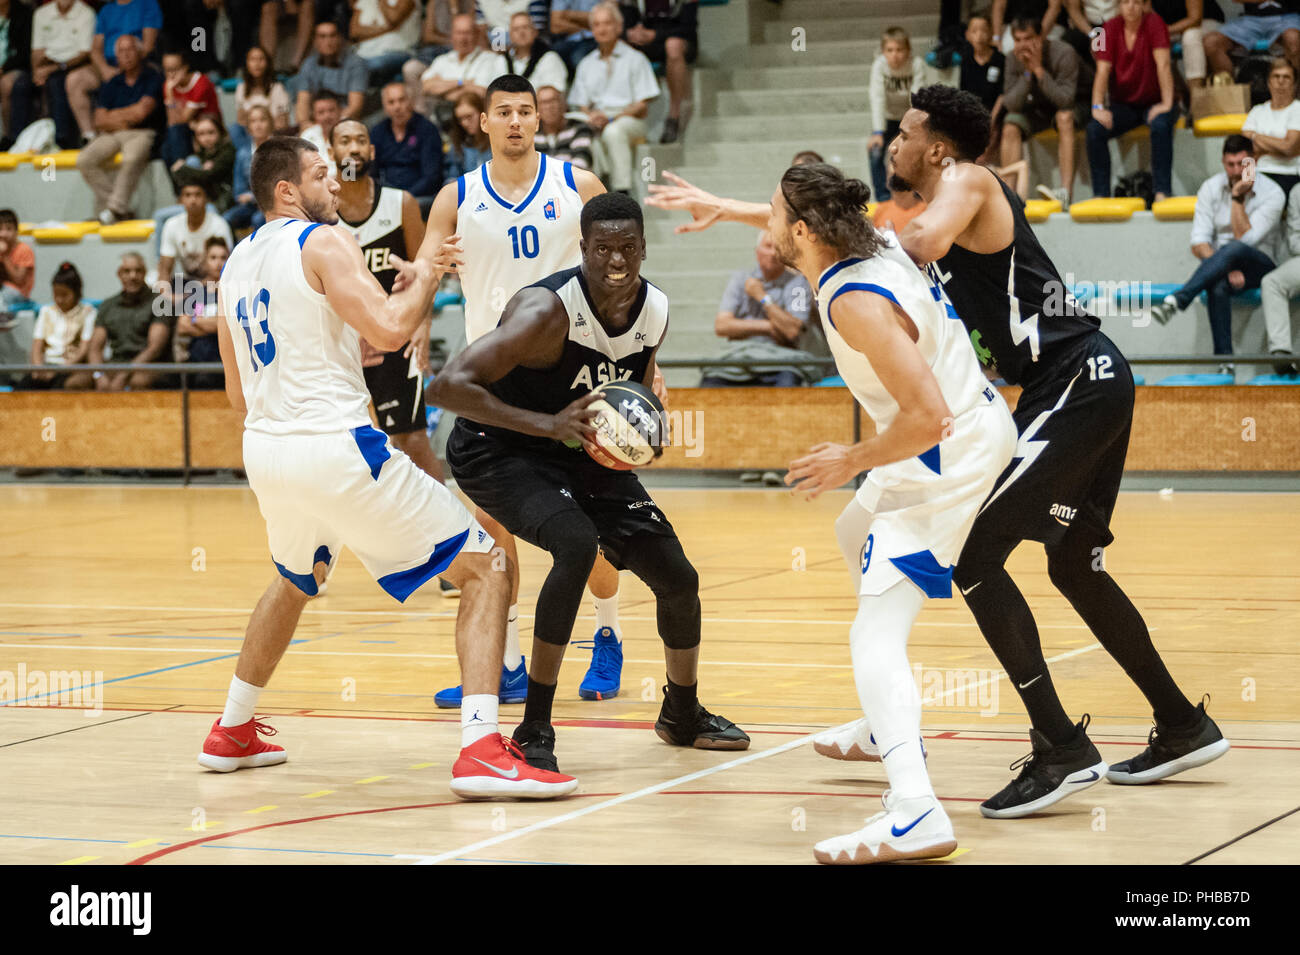 Belleville-sur-Saône, France. 31st August 2018.  Ain Star Games is a preparation tournament - The match was against ASVEL and KK Mornar Bar (88-68).  Khadim Sow with the ball. Credit: FRANCK CHAPOLARD/Alamy Live News - Stock Image